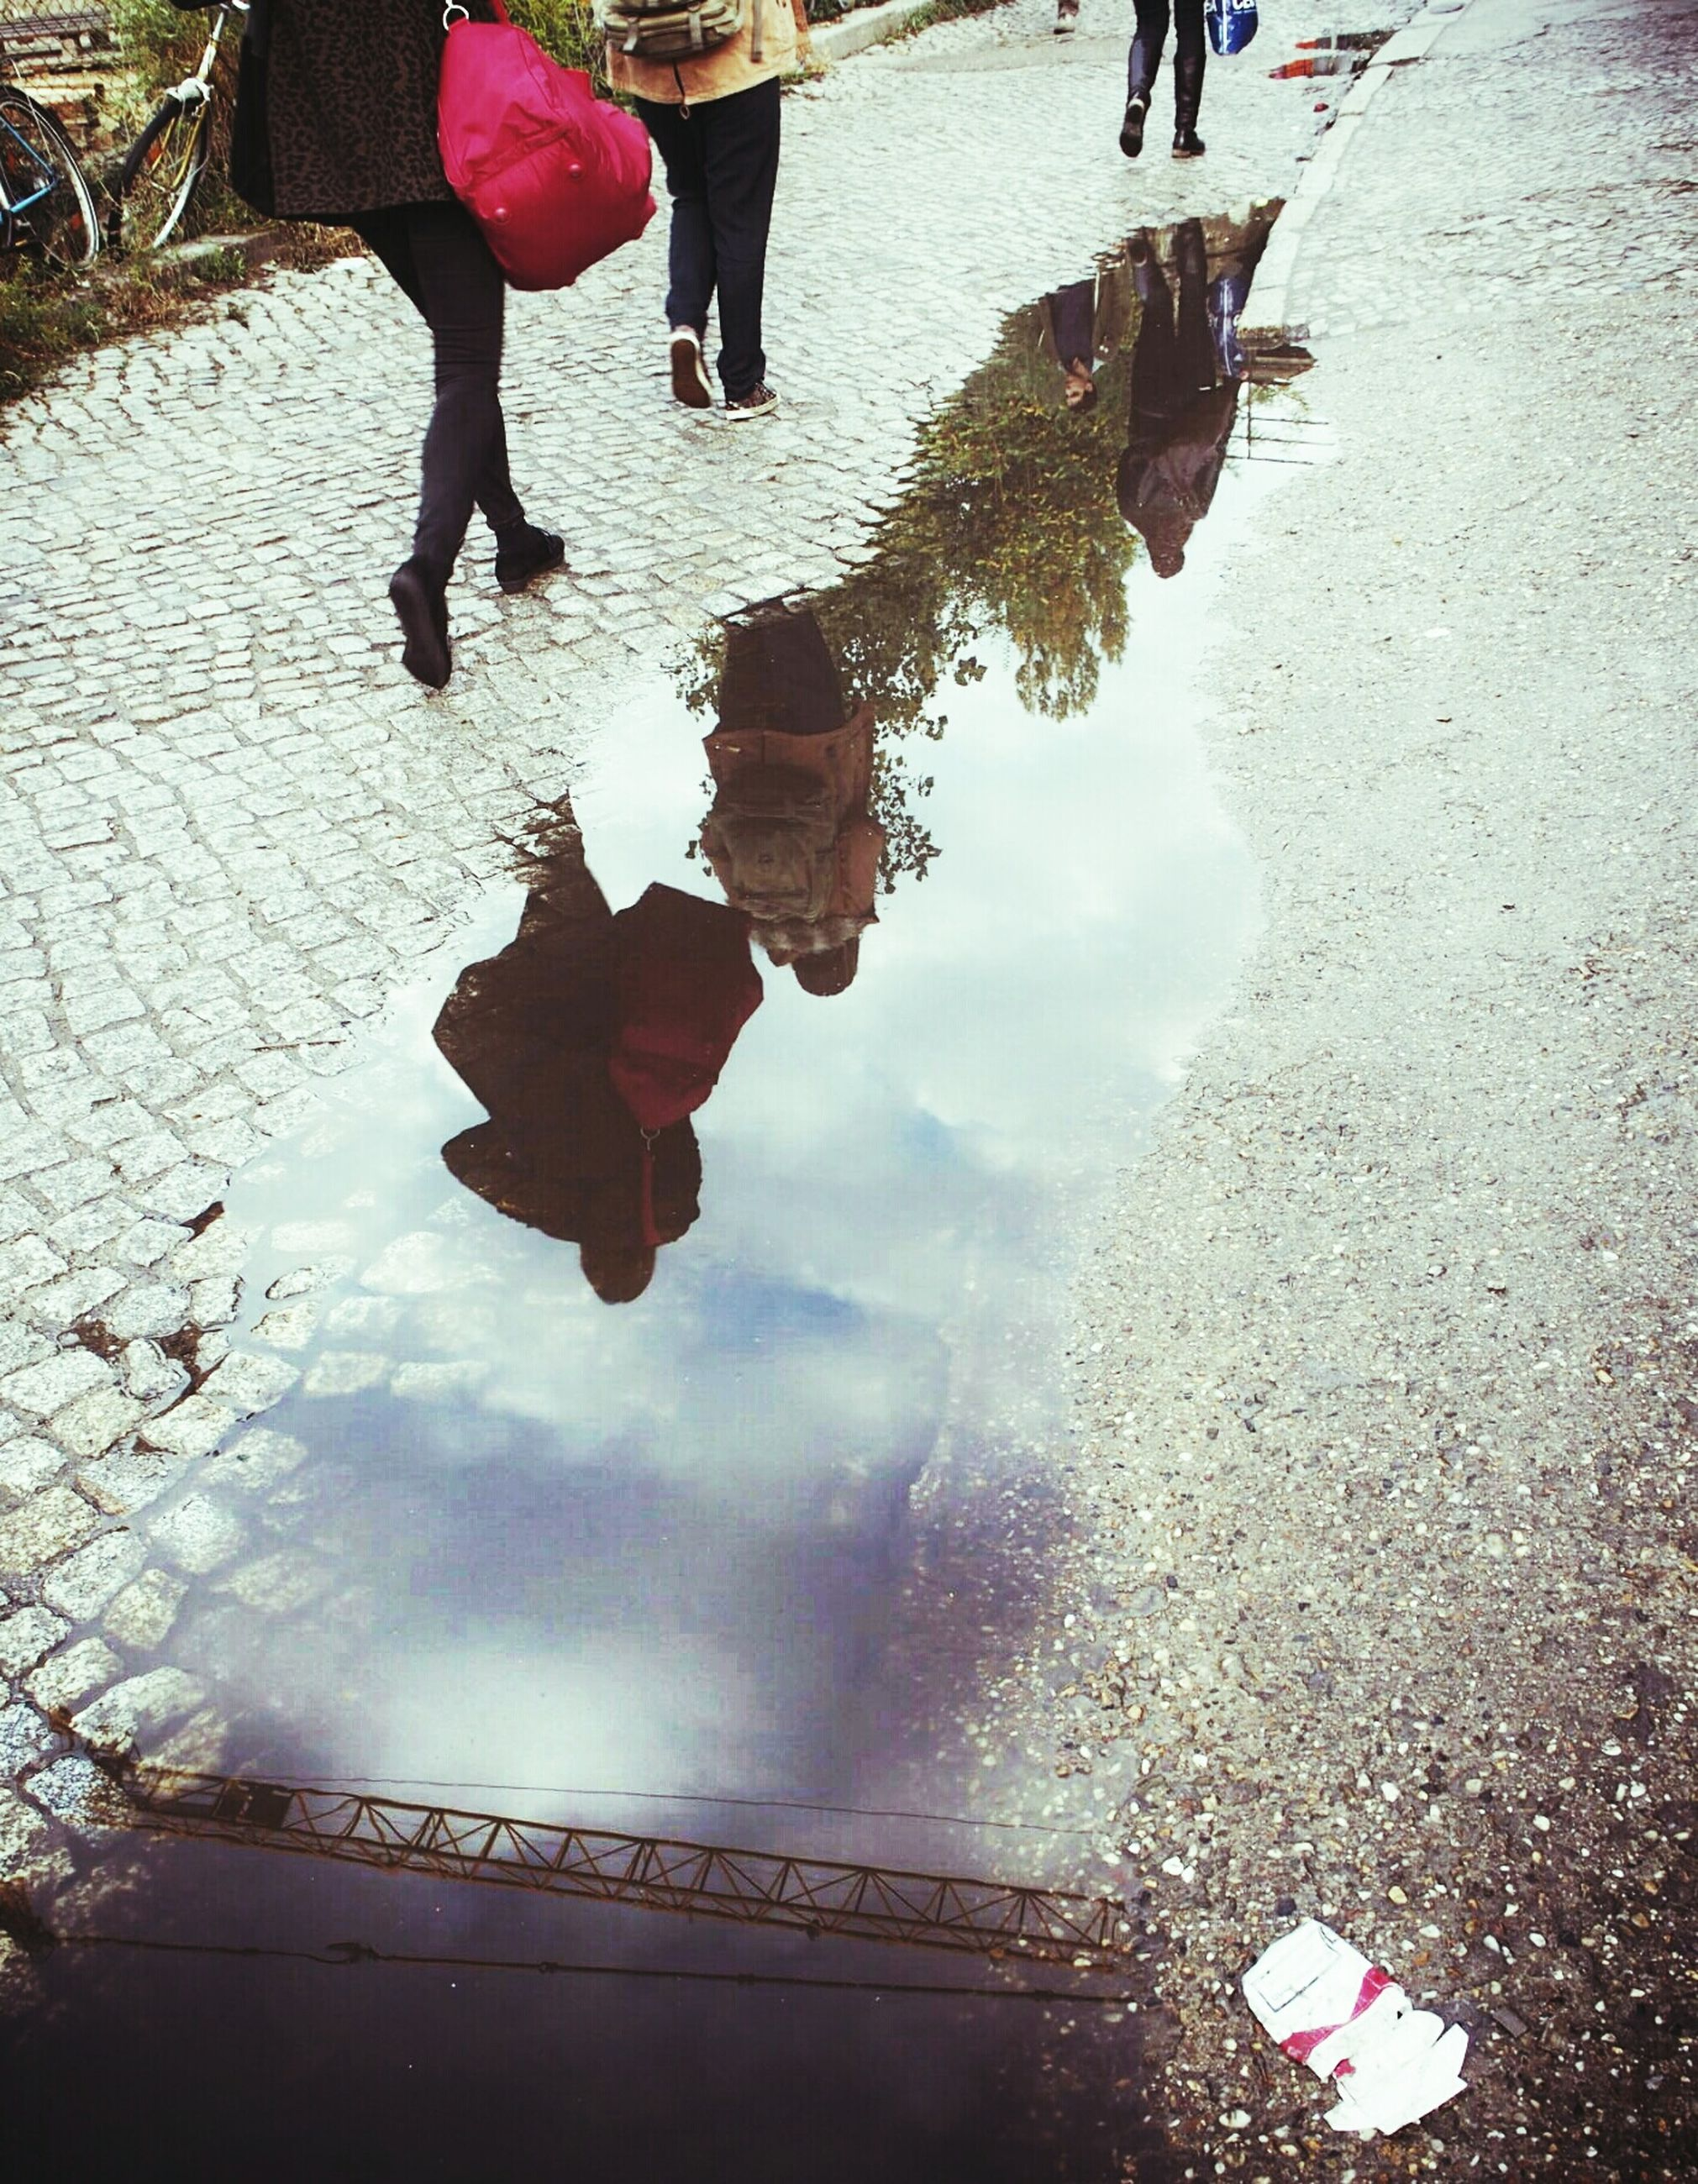 Commuters reflecting in puddle